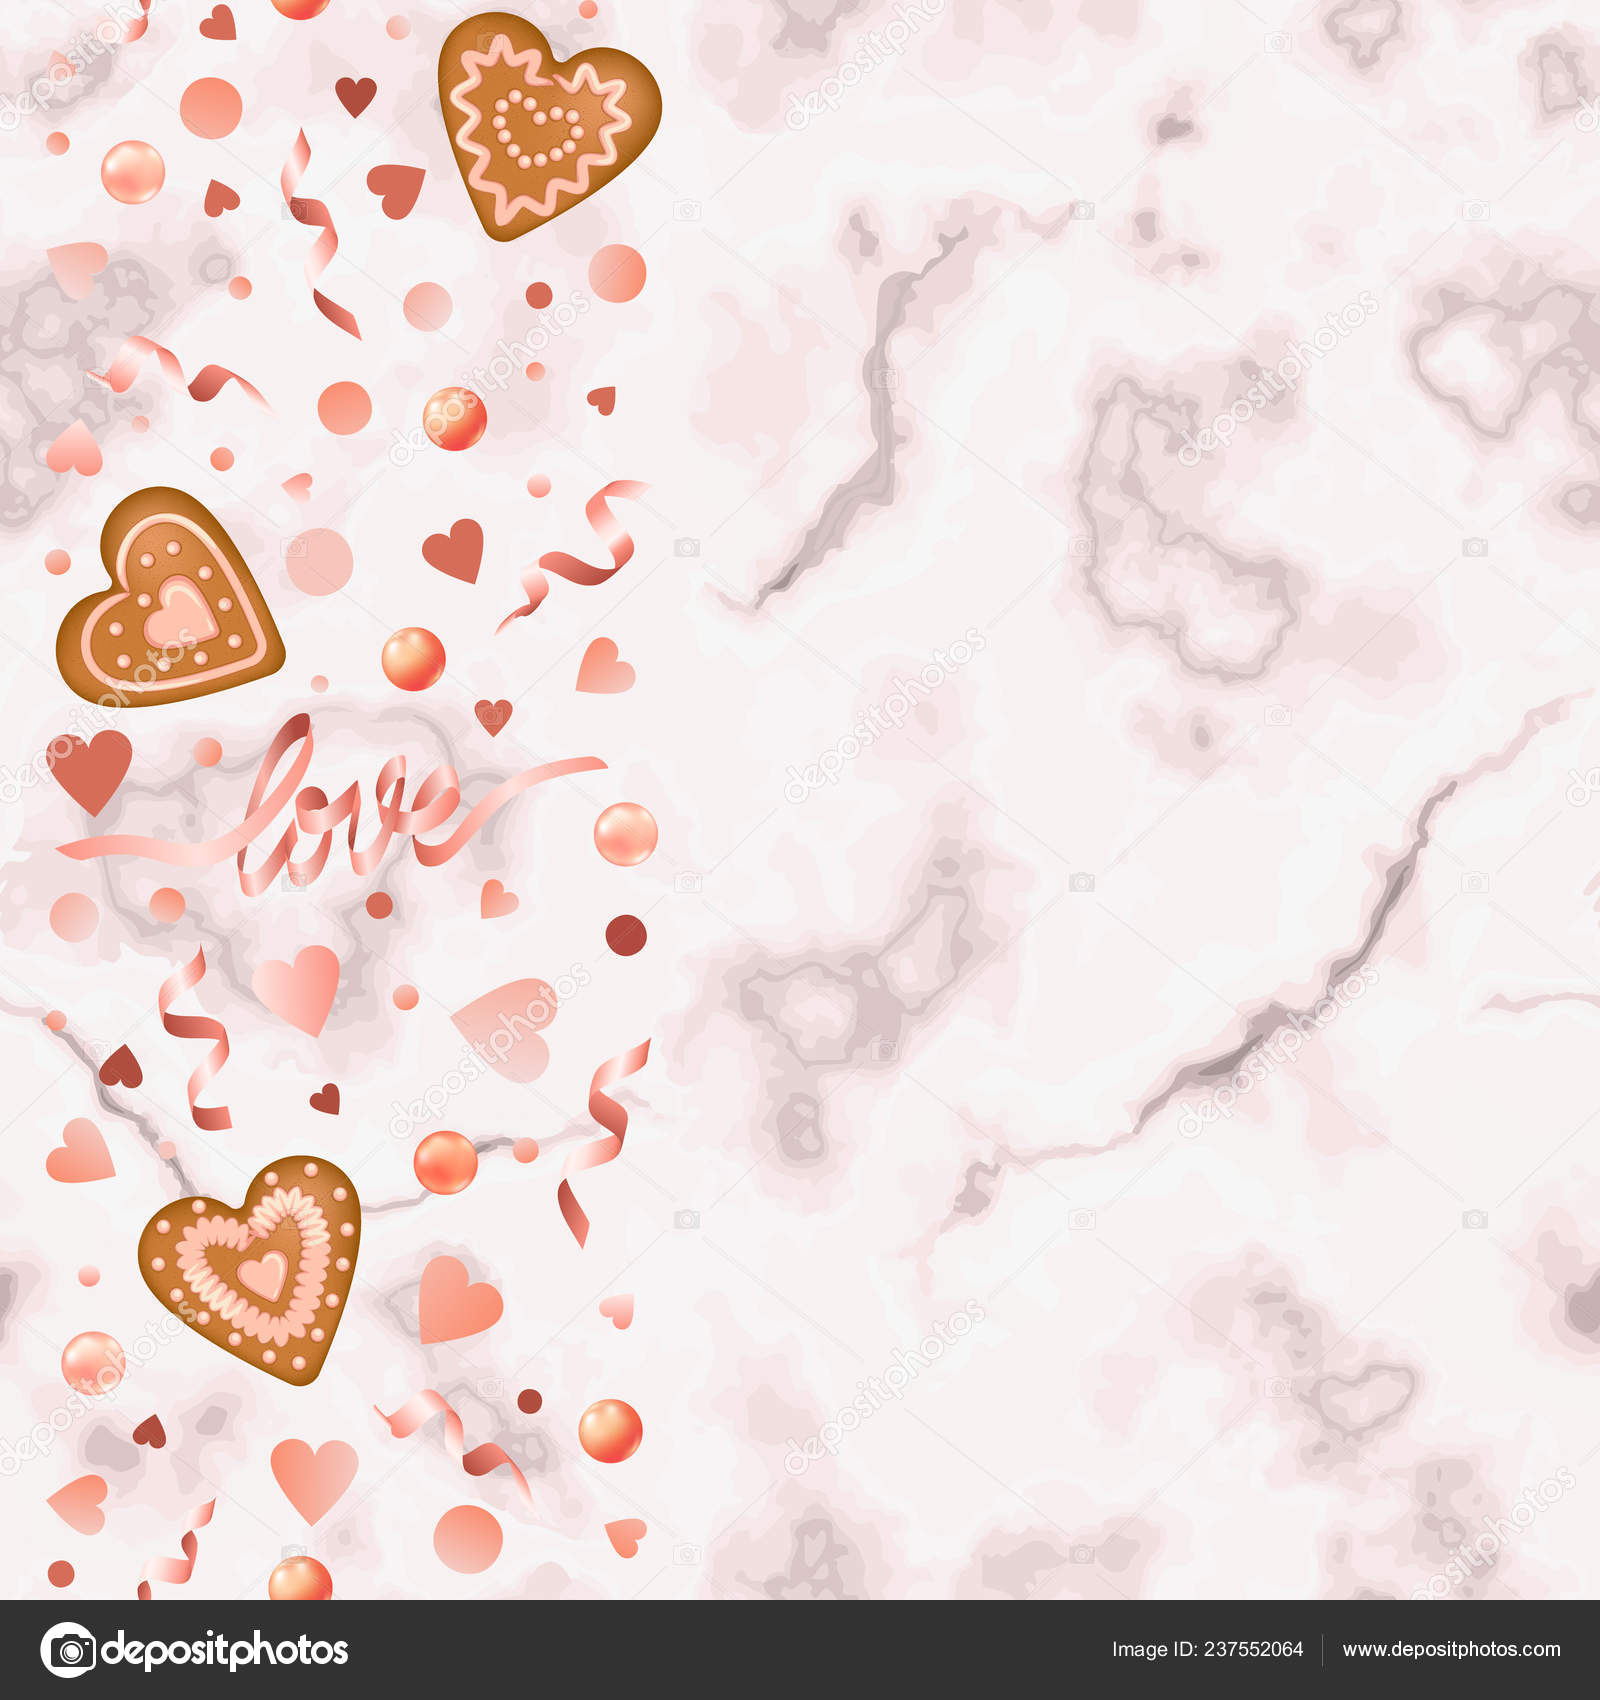 Marble Wallpaper With Hearts Love Hearts Seamless Border Gingerbread Pink Marble Background Repeat Valentines Stock Vector C Kronalux 237552064